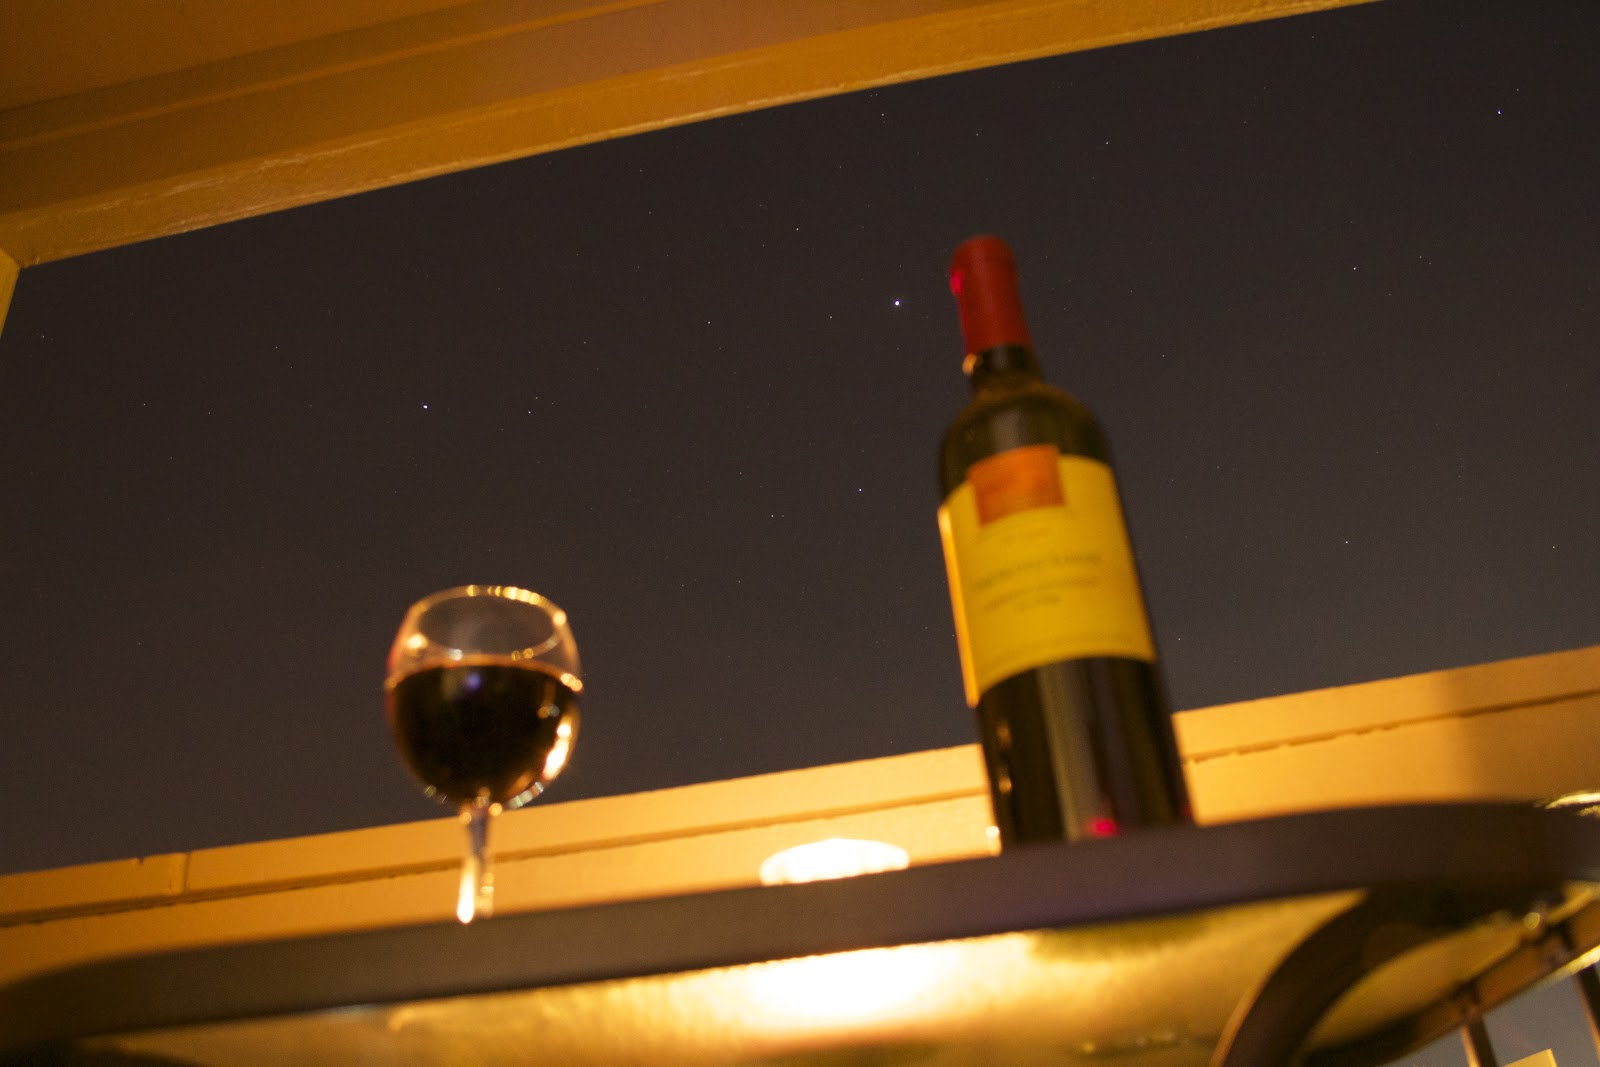 wine bottle and wine glass in front of stars background